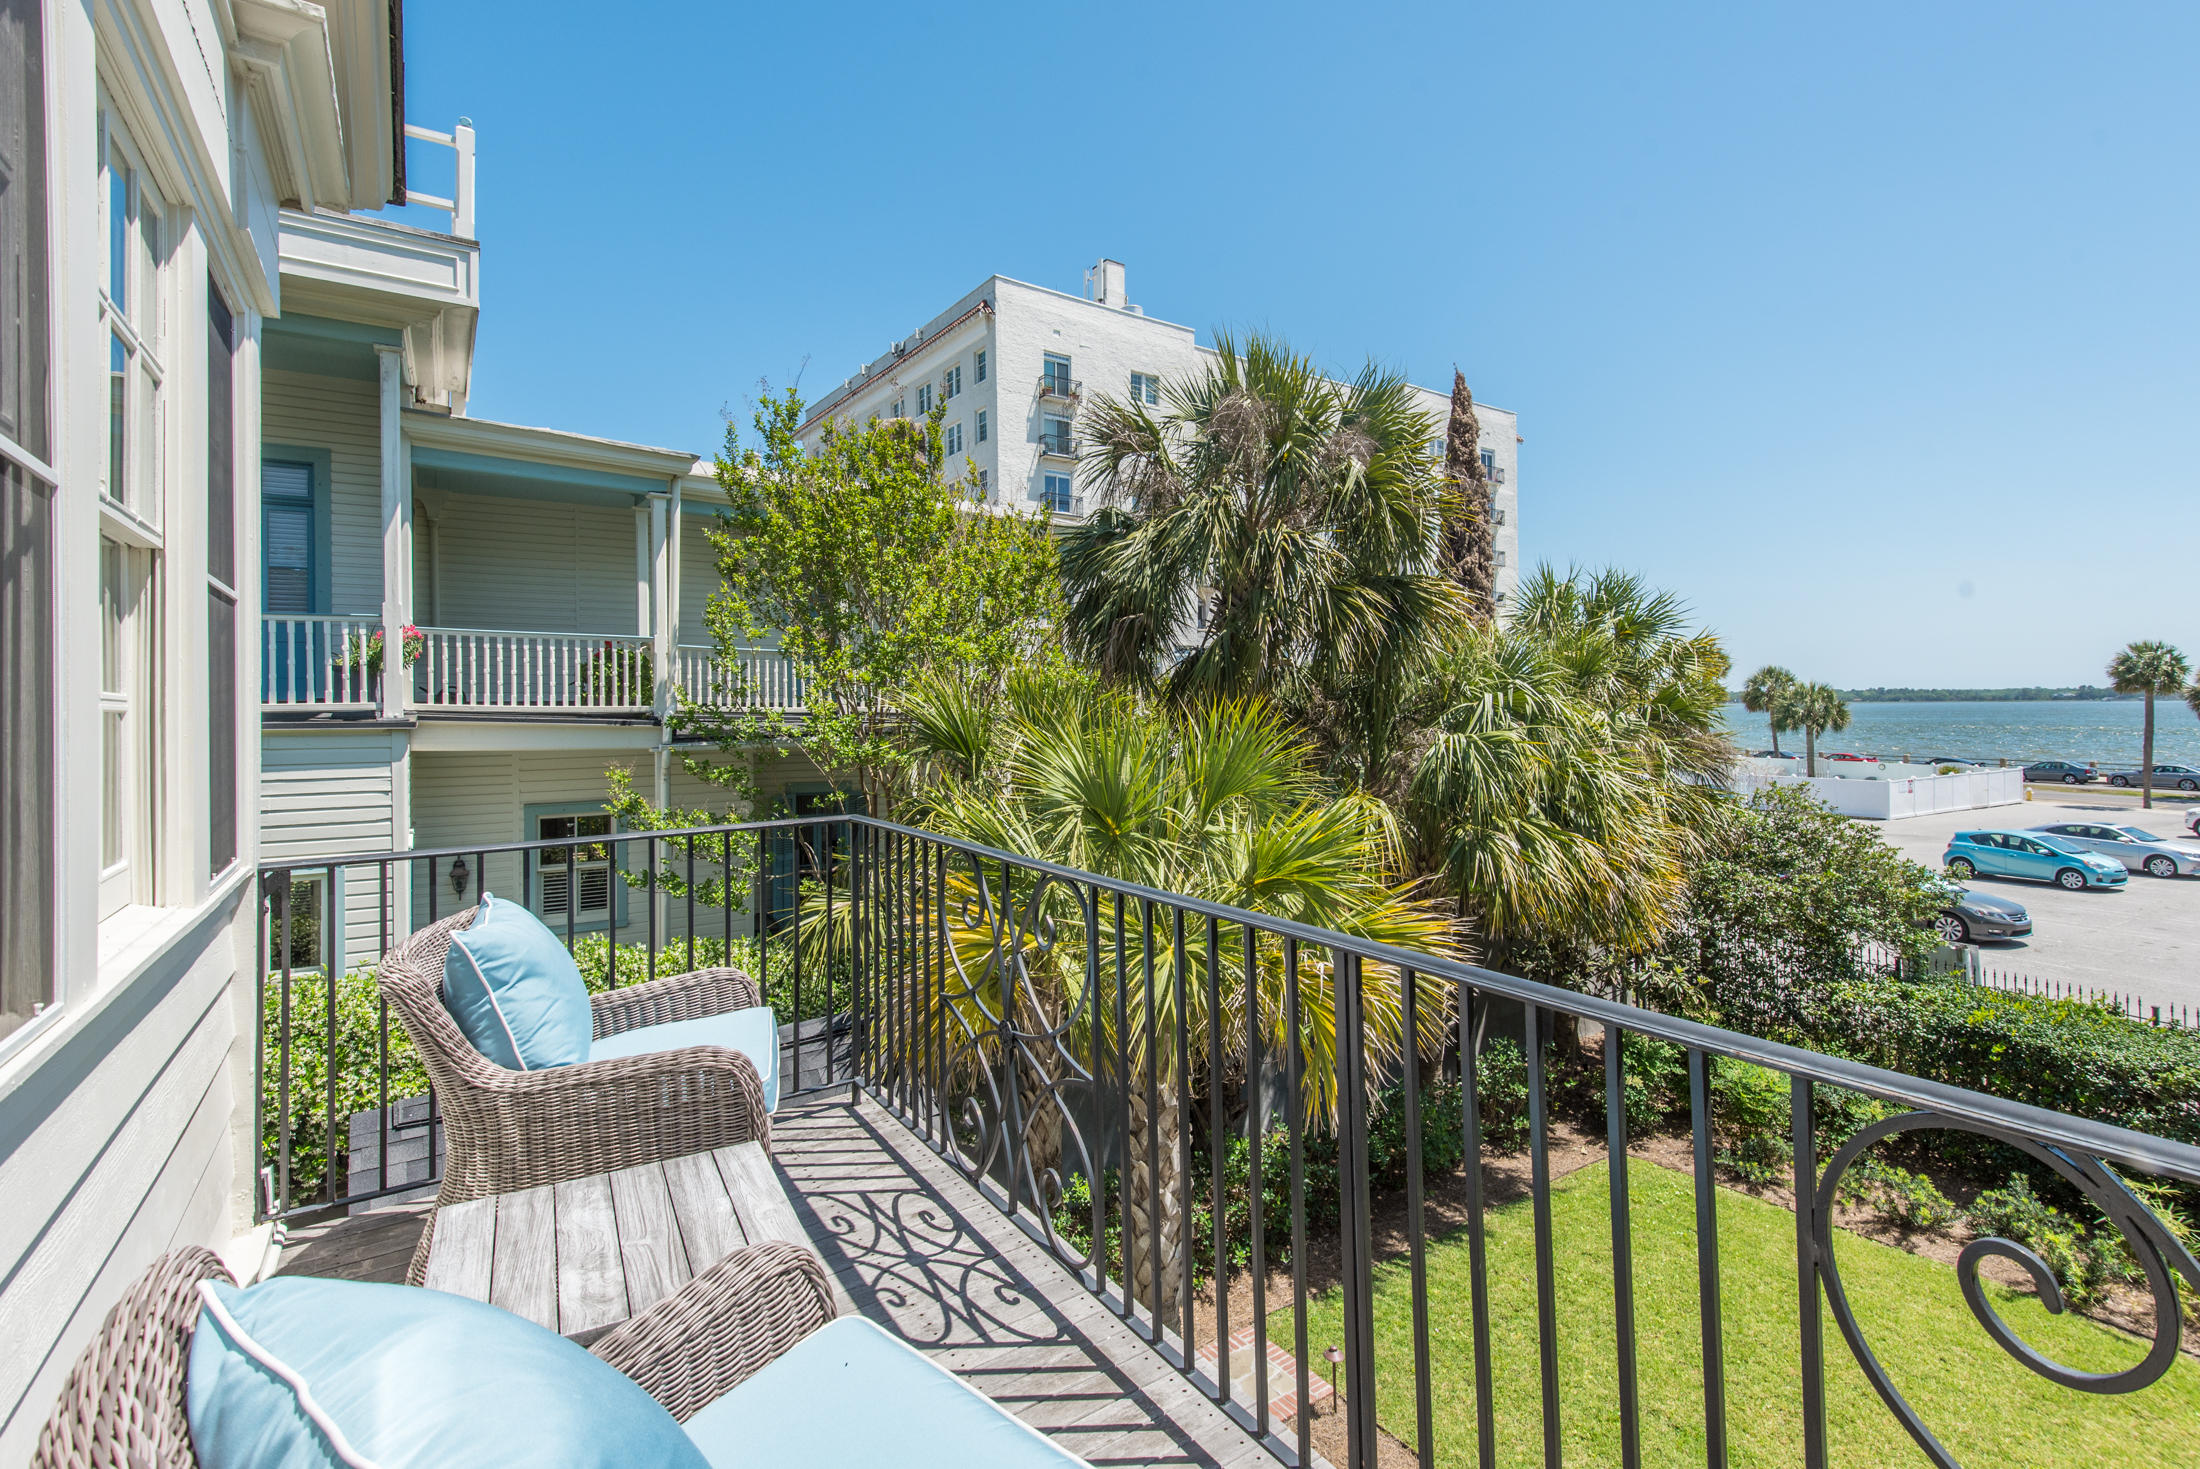 Home for sale 45 Battery , South Of Broad, Downtown Charleston, SC